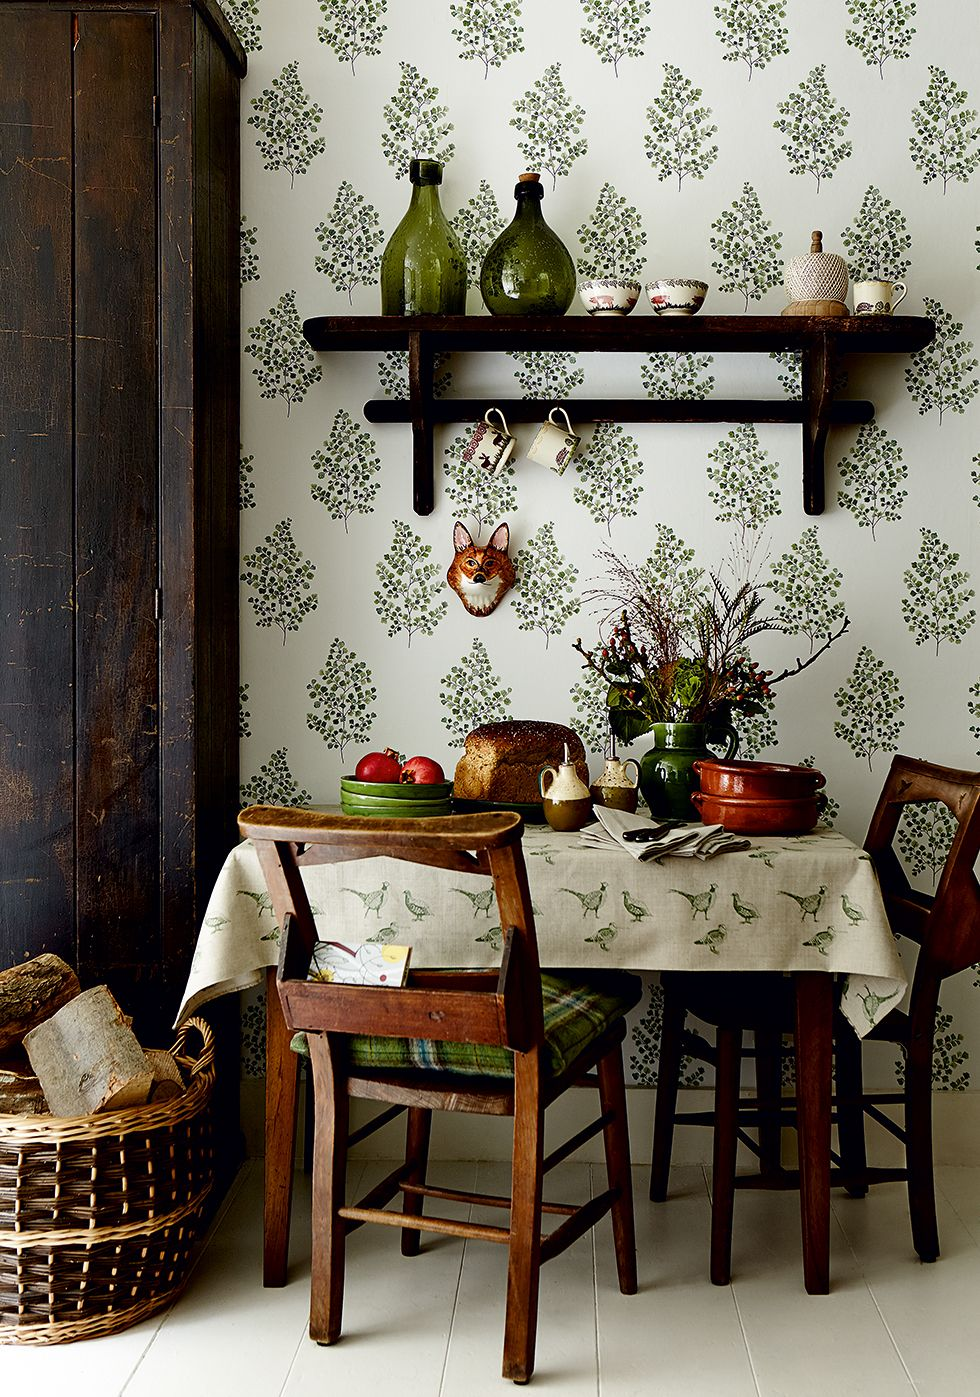 Illustrated botanical wallpaper contrasts with dark wood